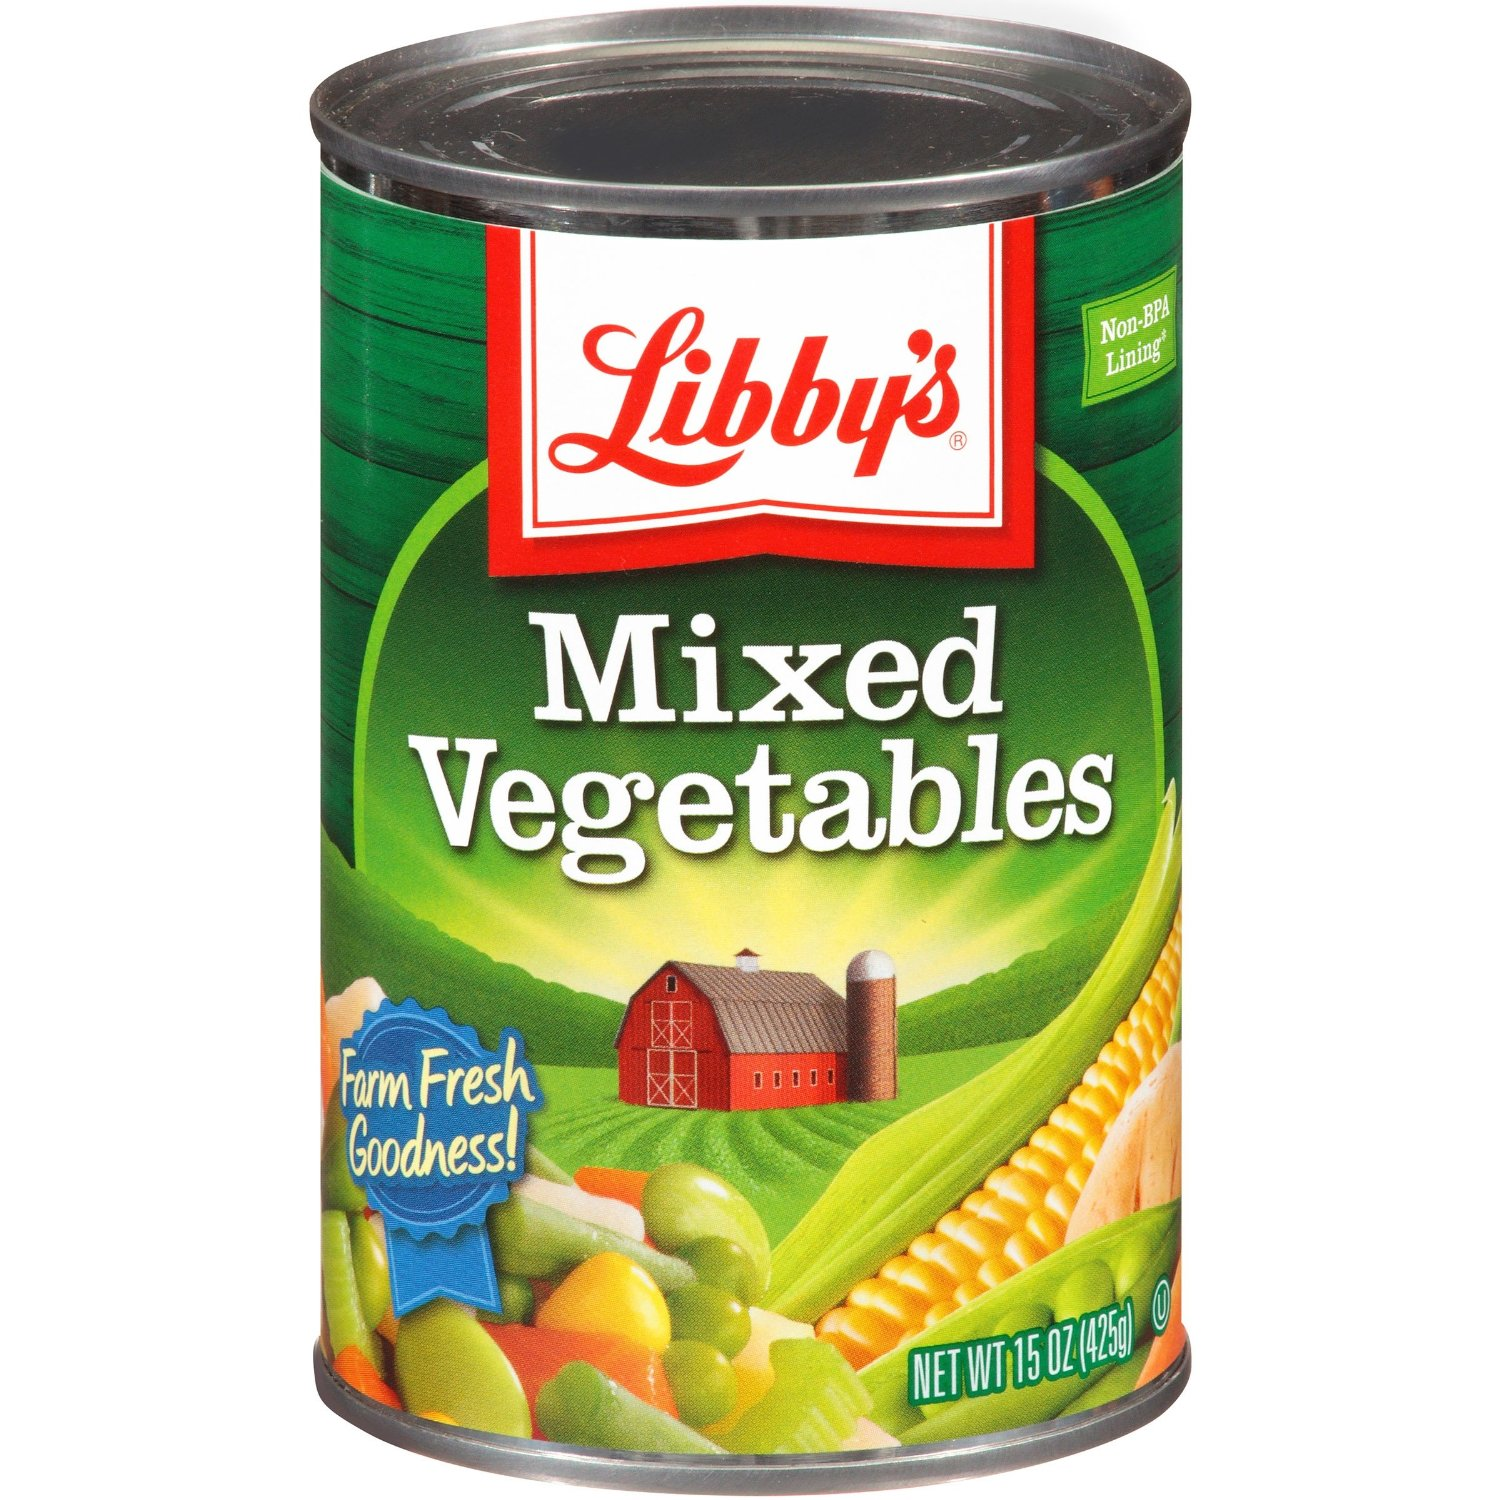 Libby's Vegetables For JUST $.44 At Acme Starting Friday 1/8/16!.